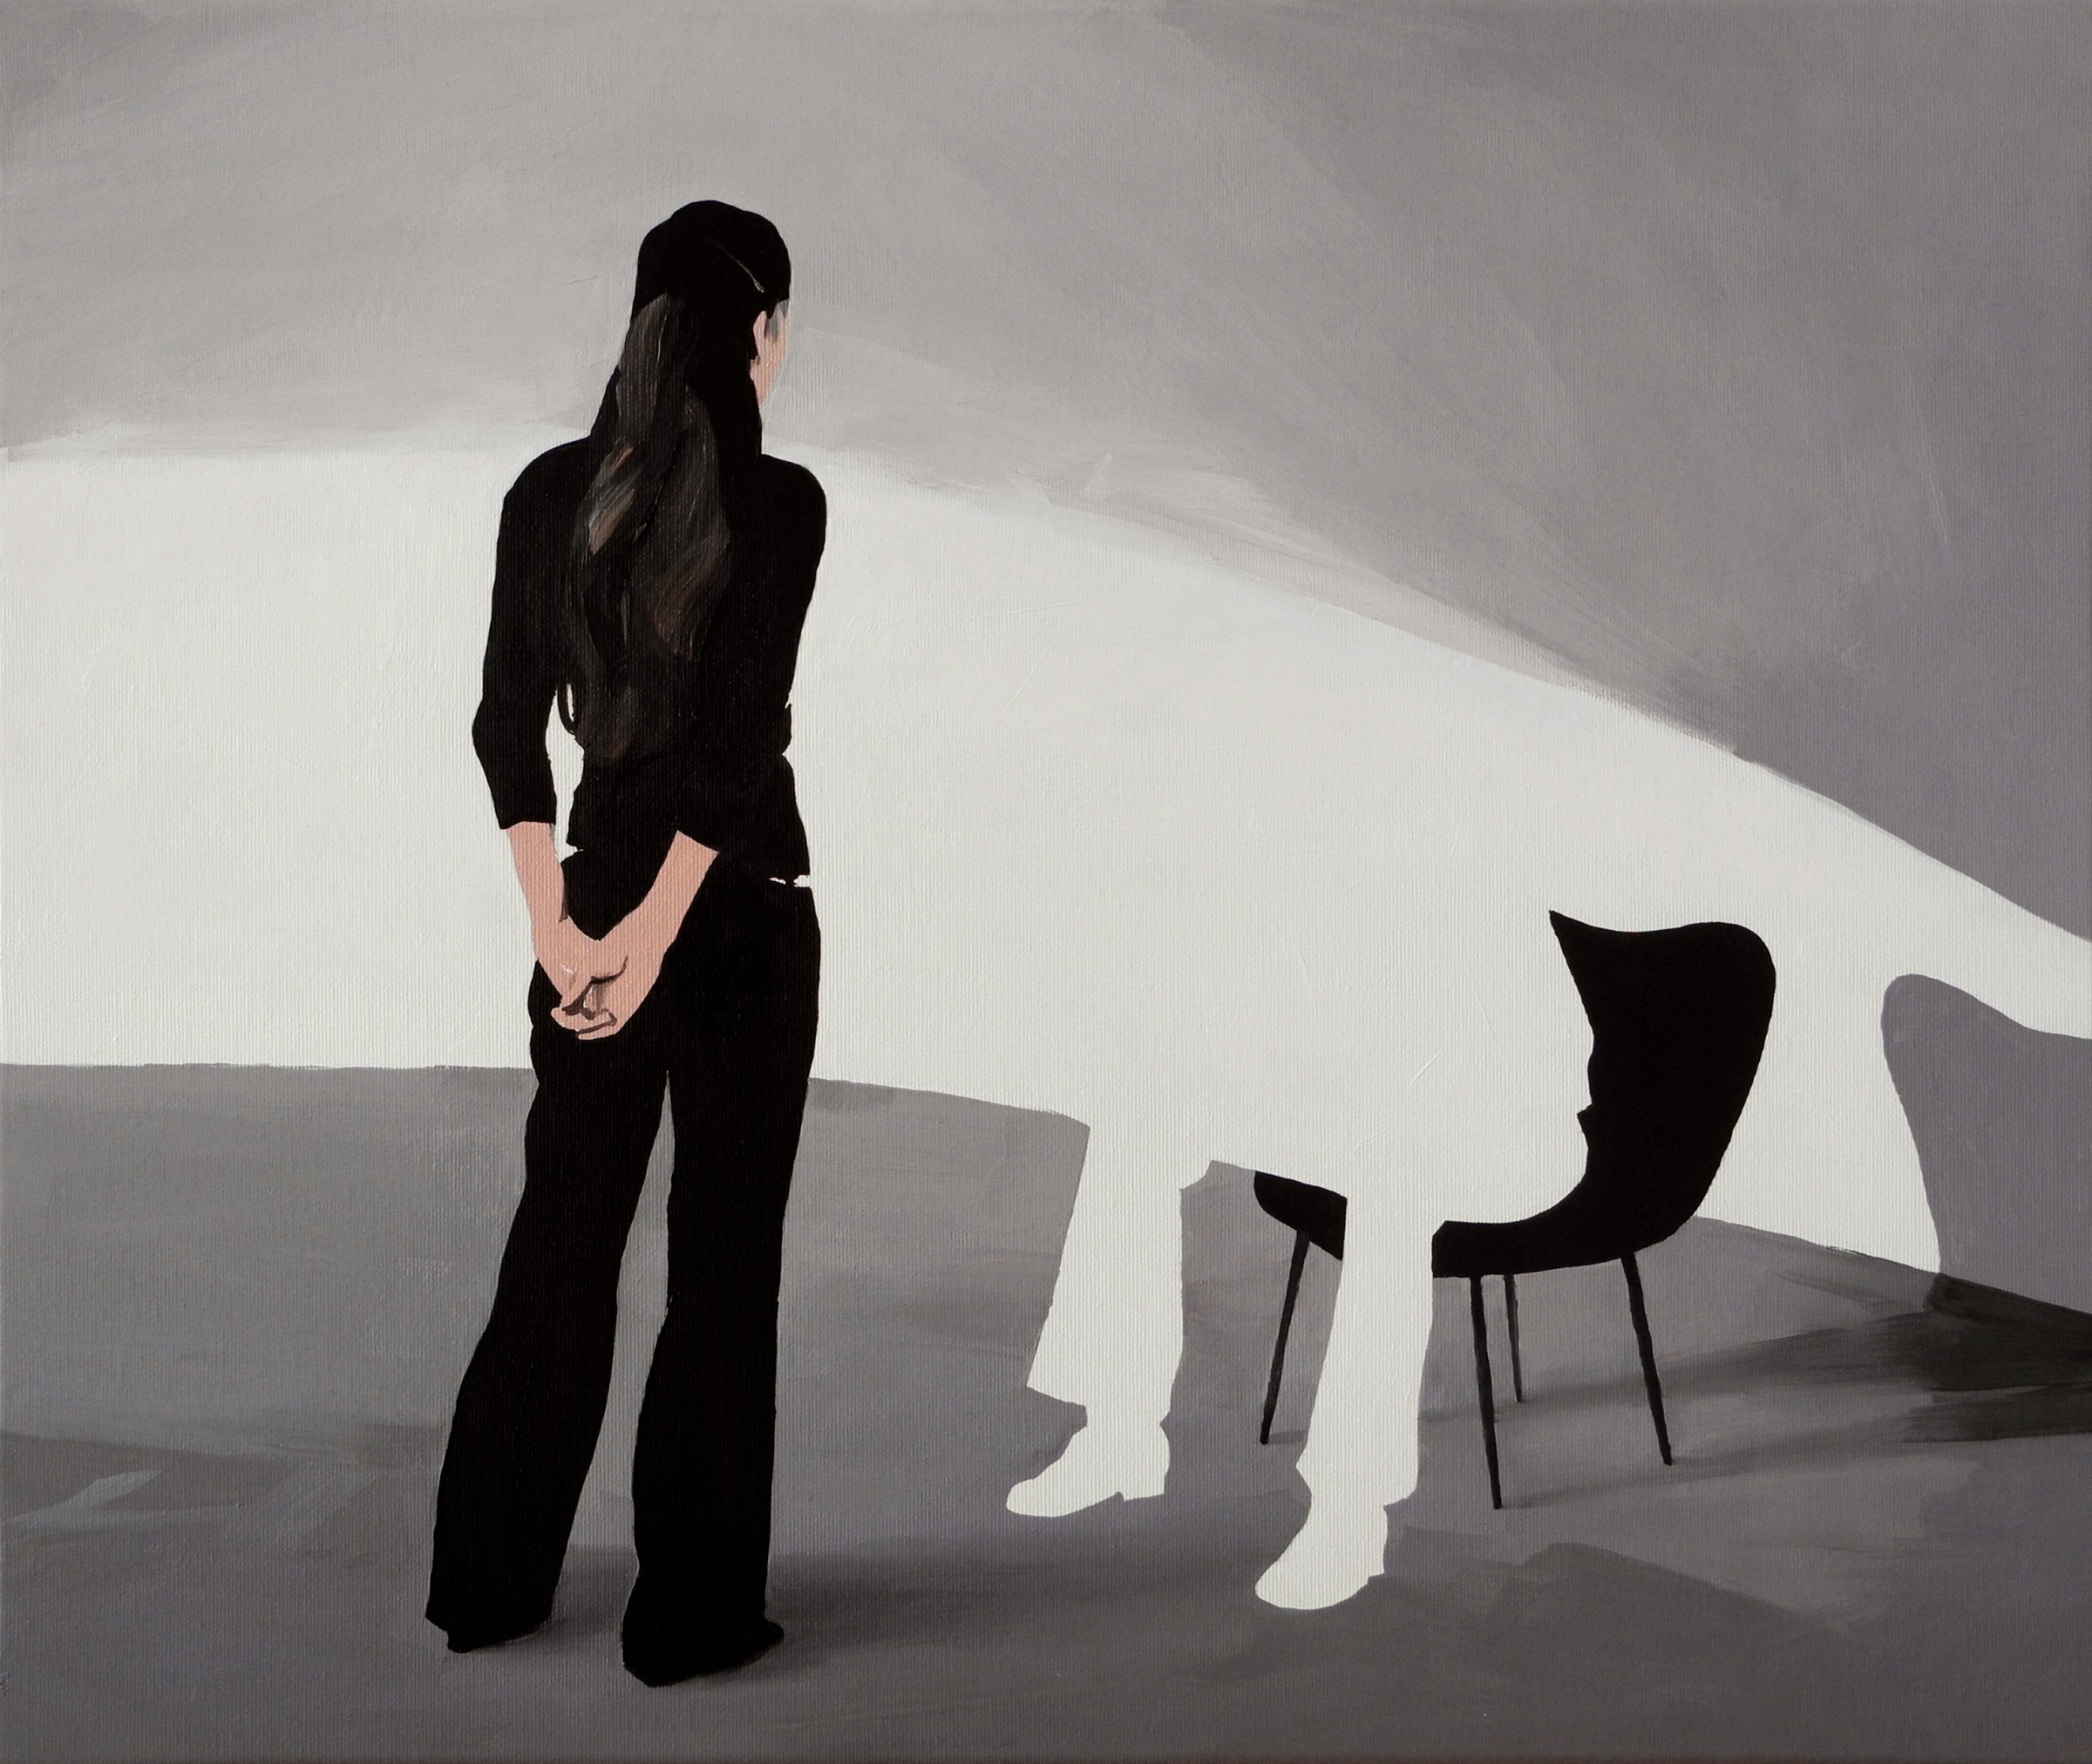 <span class=&#34;link fancybox-details-link&#34;><a href=&#34;/artists/54-jarek-puczel/works/270-jarek-puczel-invisible-man/&#34;>View Detail Page</a></span><div class=&#34;artist&#34;><strong>Jarek Puczel</strong></div> <div class=&#34;title&#34;><em>Invisible Man</em></div> <div class=&#34;medium&#34;>Oil on Canvas </div> <div class=&#34;dimensions&#34;>20 x 24 inches </div>